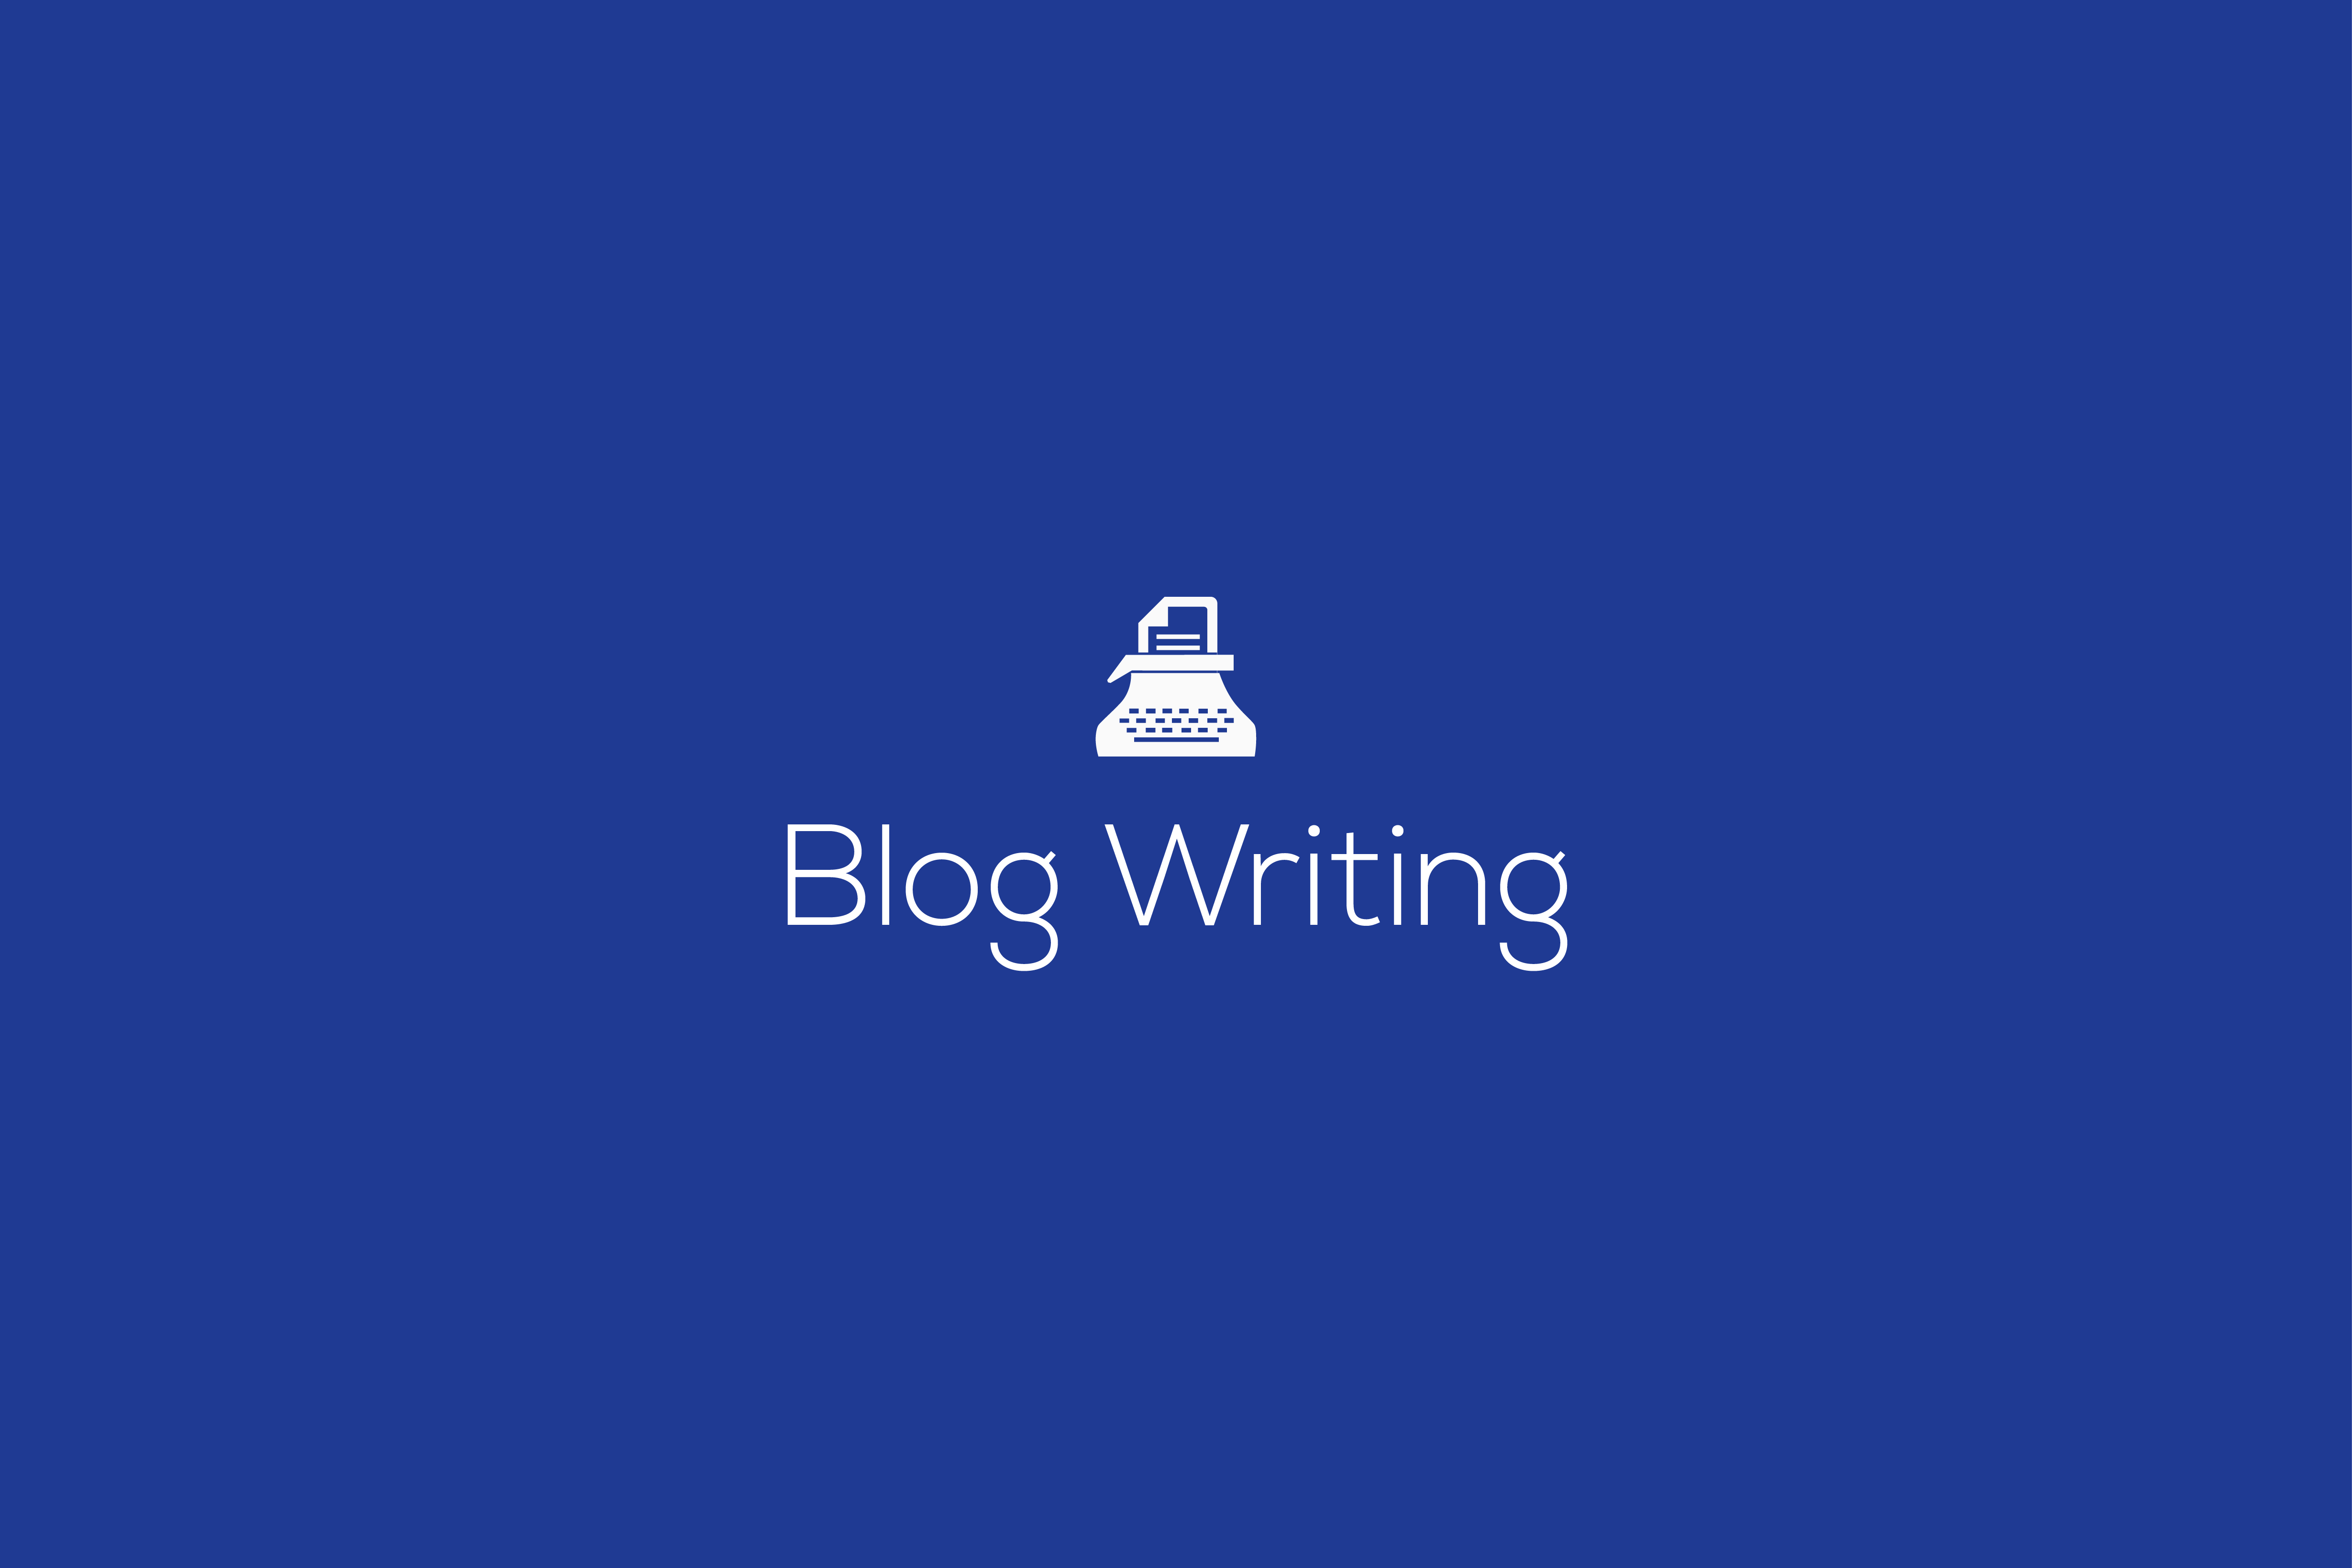 Blog writing service, Blog writing packages